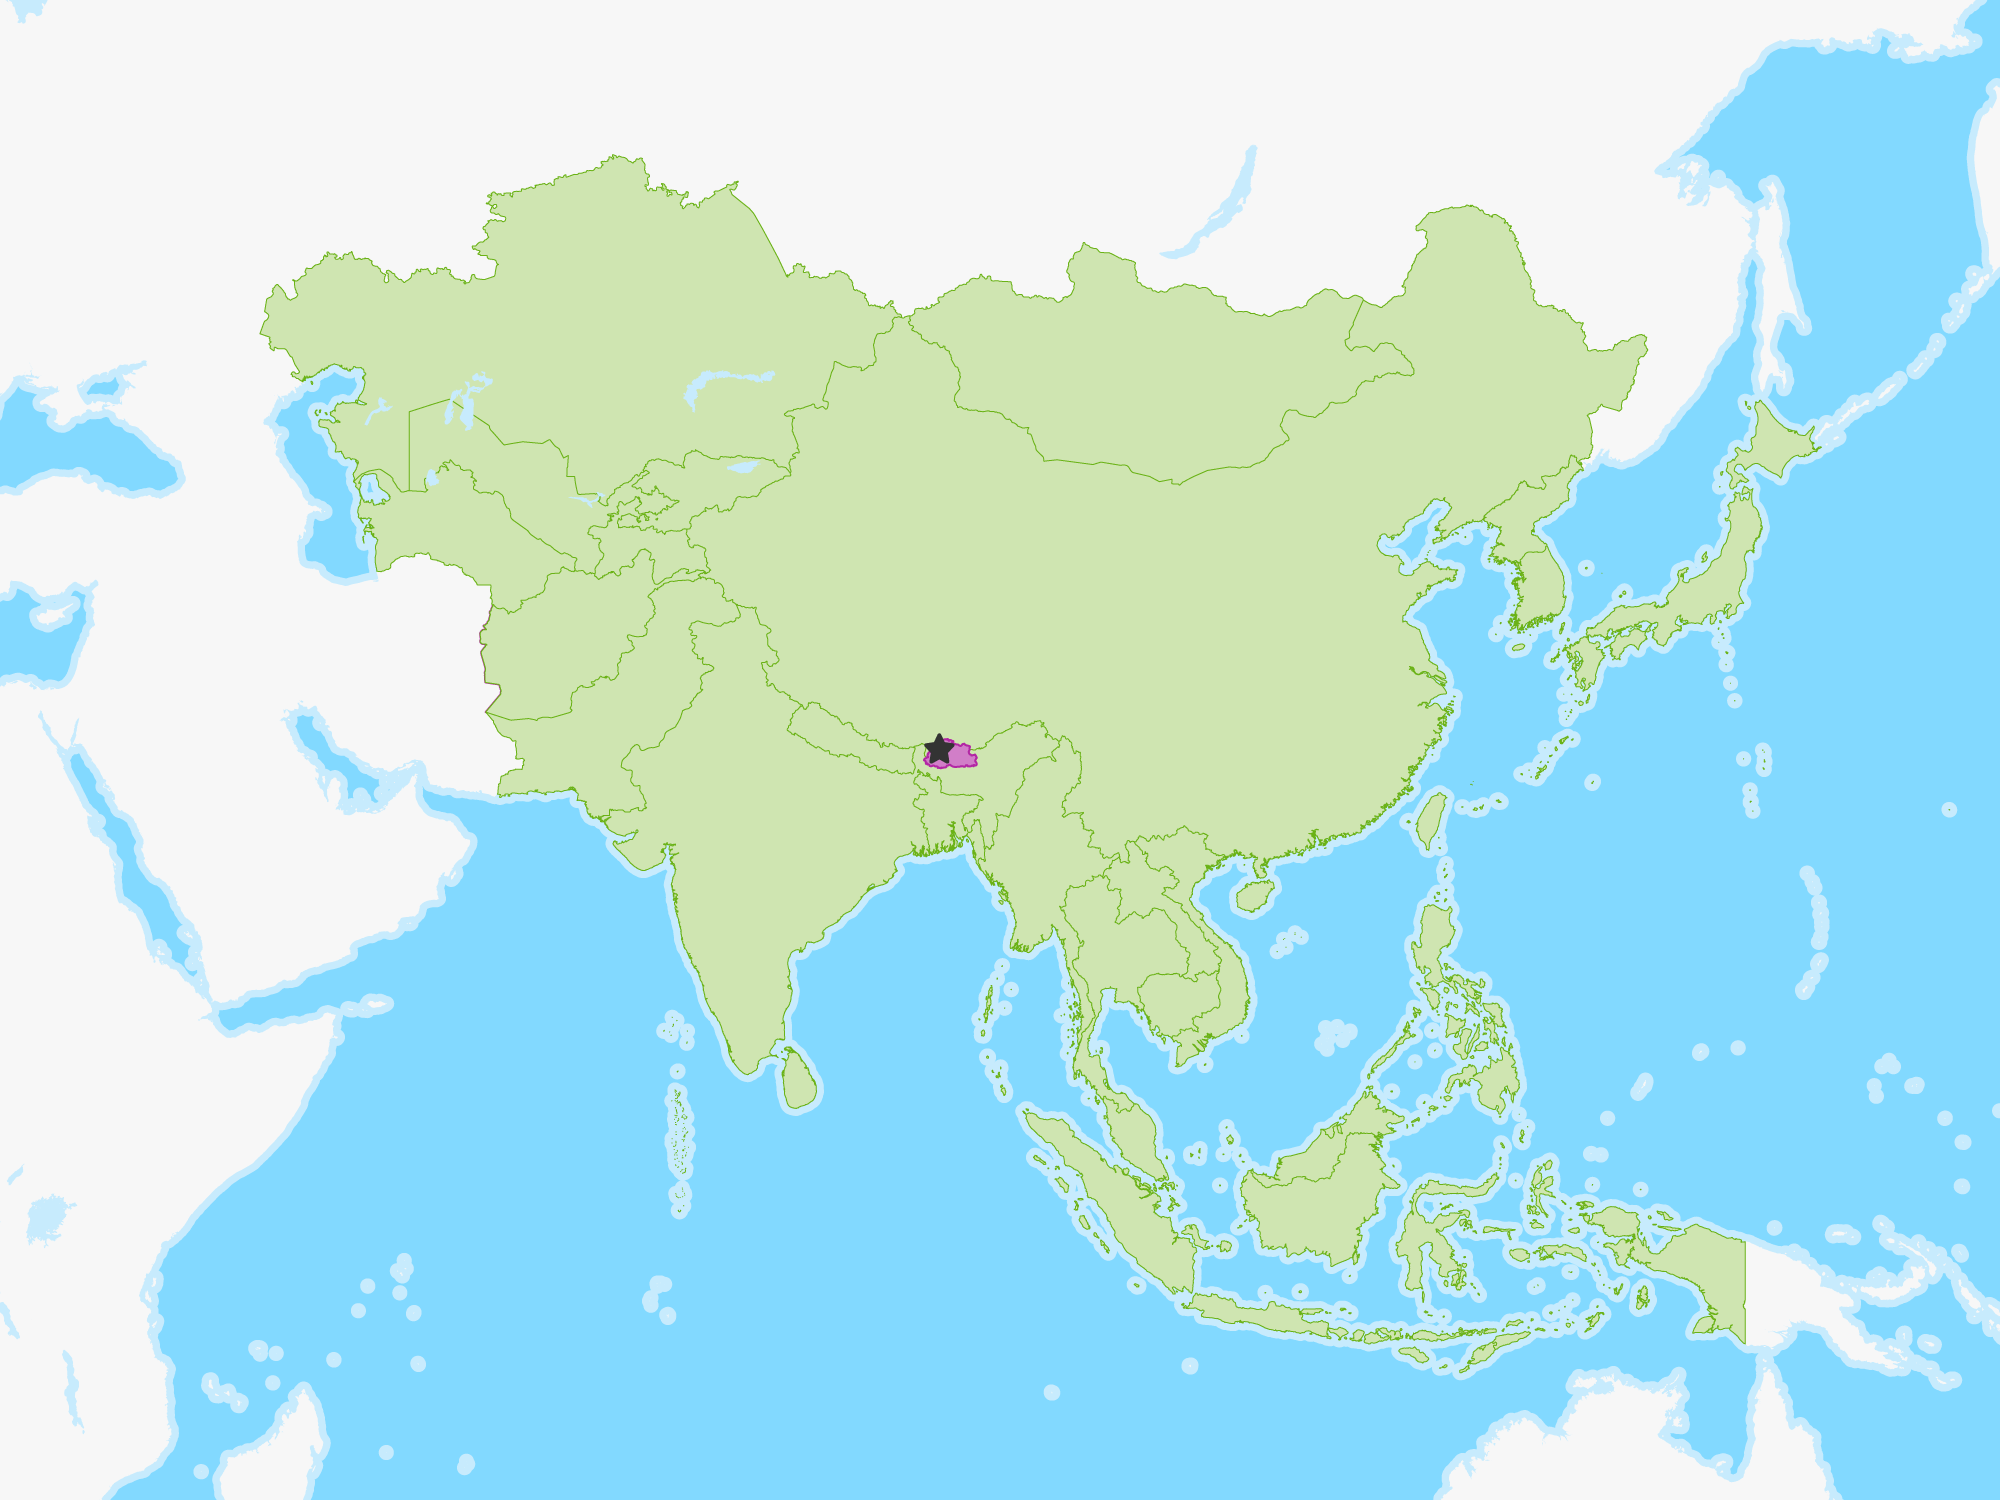 Bhutan | Free Study Maps on map of chile, united states of america, map of india, map of peru, map of sri lanka, map of japan, map of nepal, map of myanmar, map of k2, jetsun pema, map of china, map of middle east, map of iraq, map of singapore, map of tibet, south asia, sri lanka, map of brunei, map of philippines, map of liechtenstein, map of bangladesh, map of turkey, map of himalayas, map of asia,